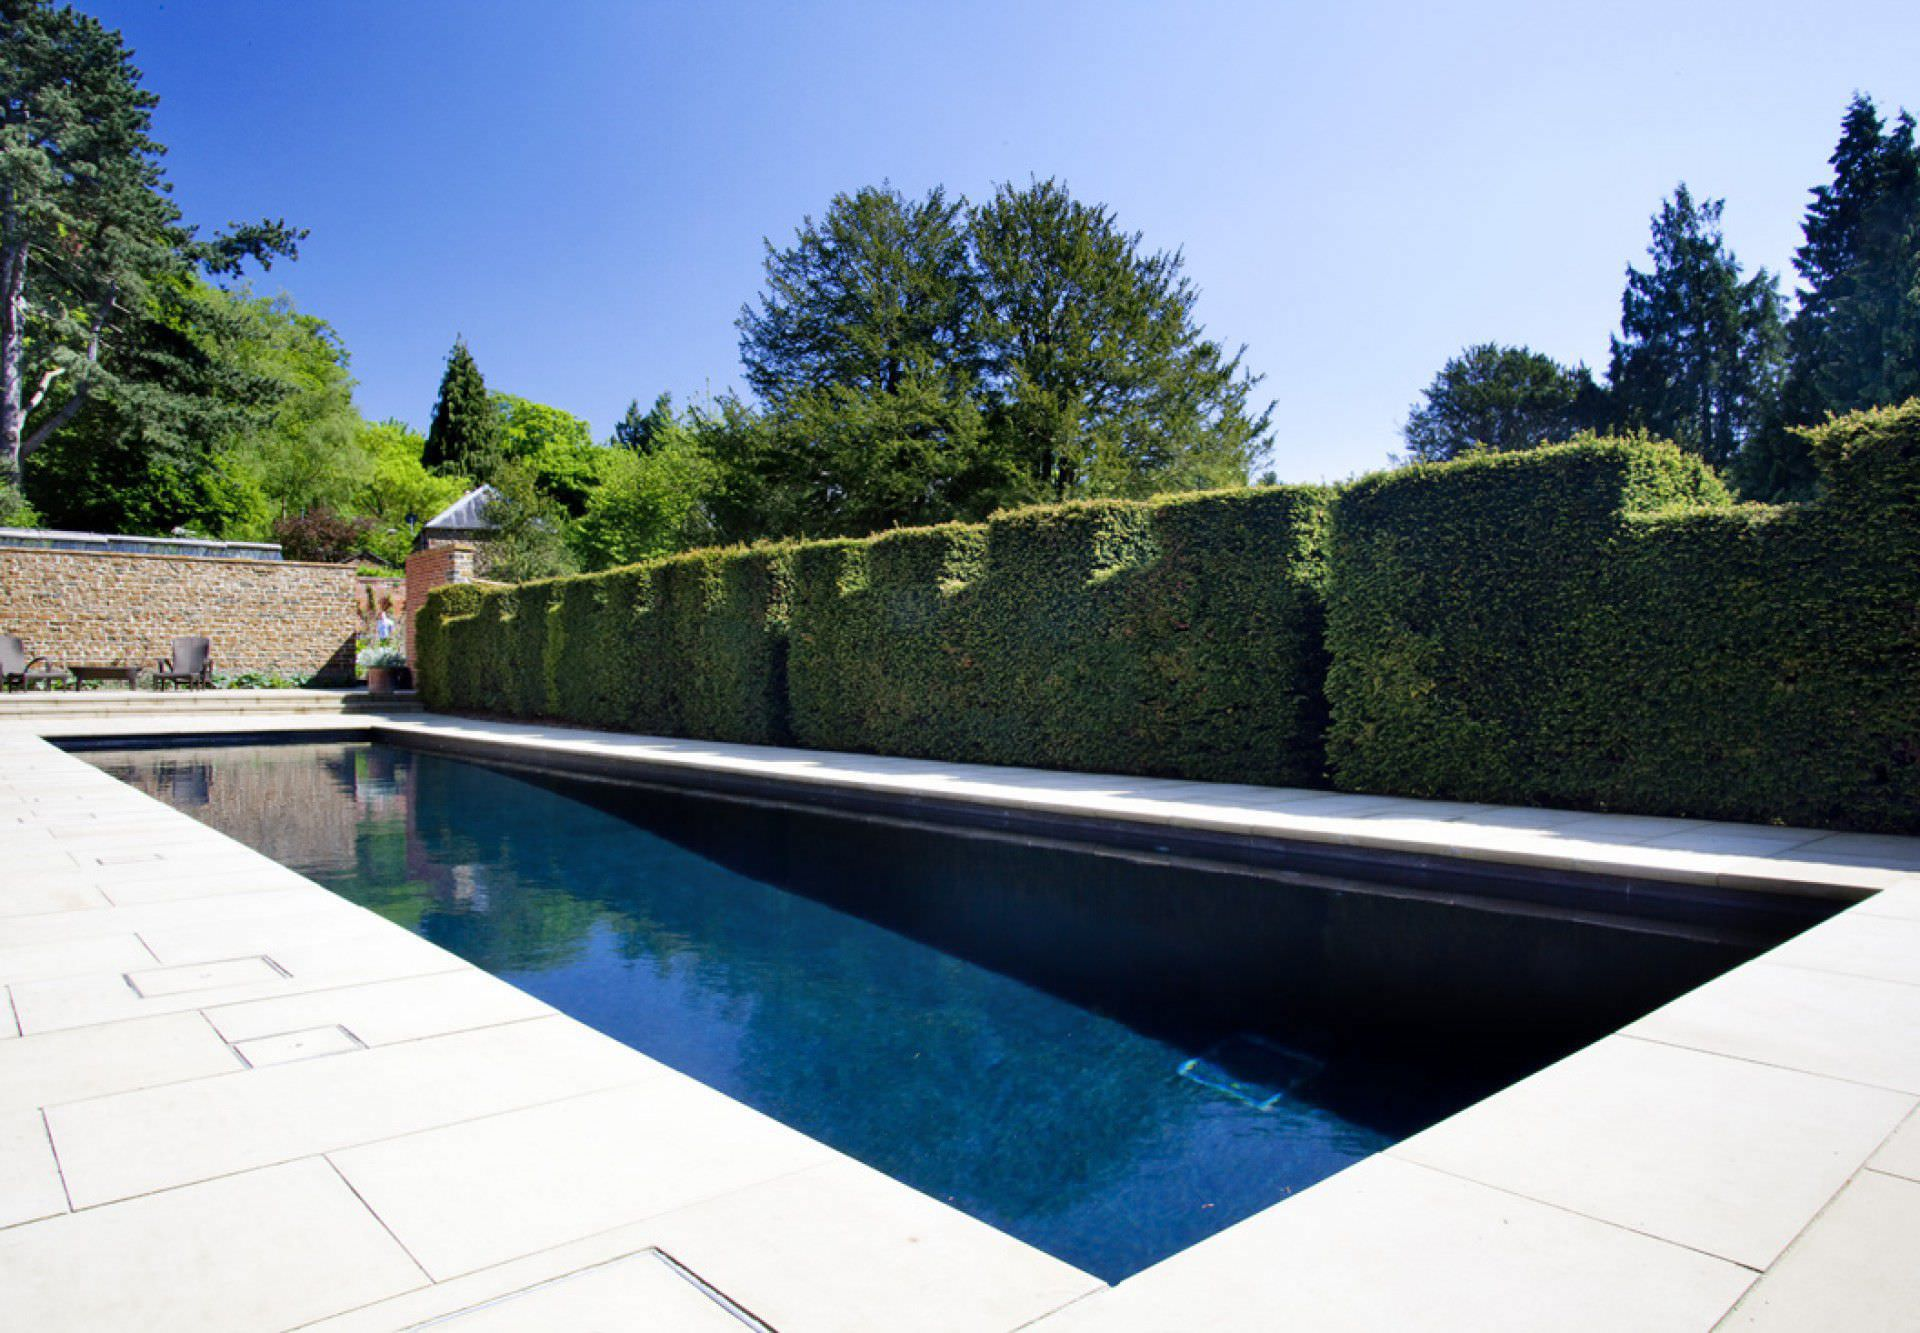 Piscina interrata in pietra da esterno luxury guncast